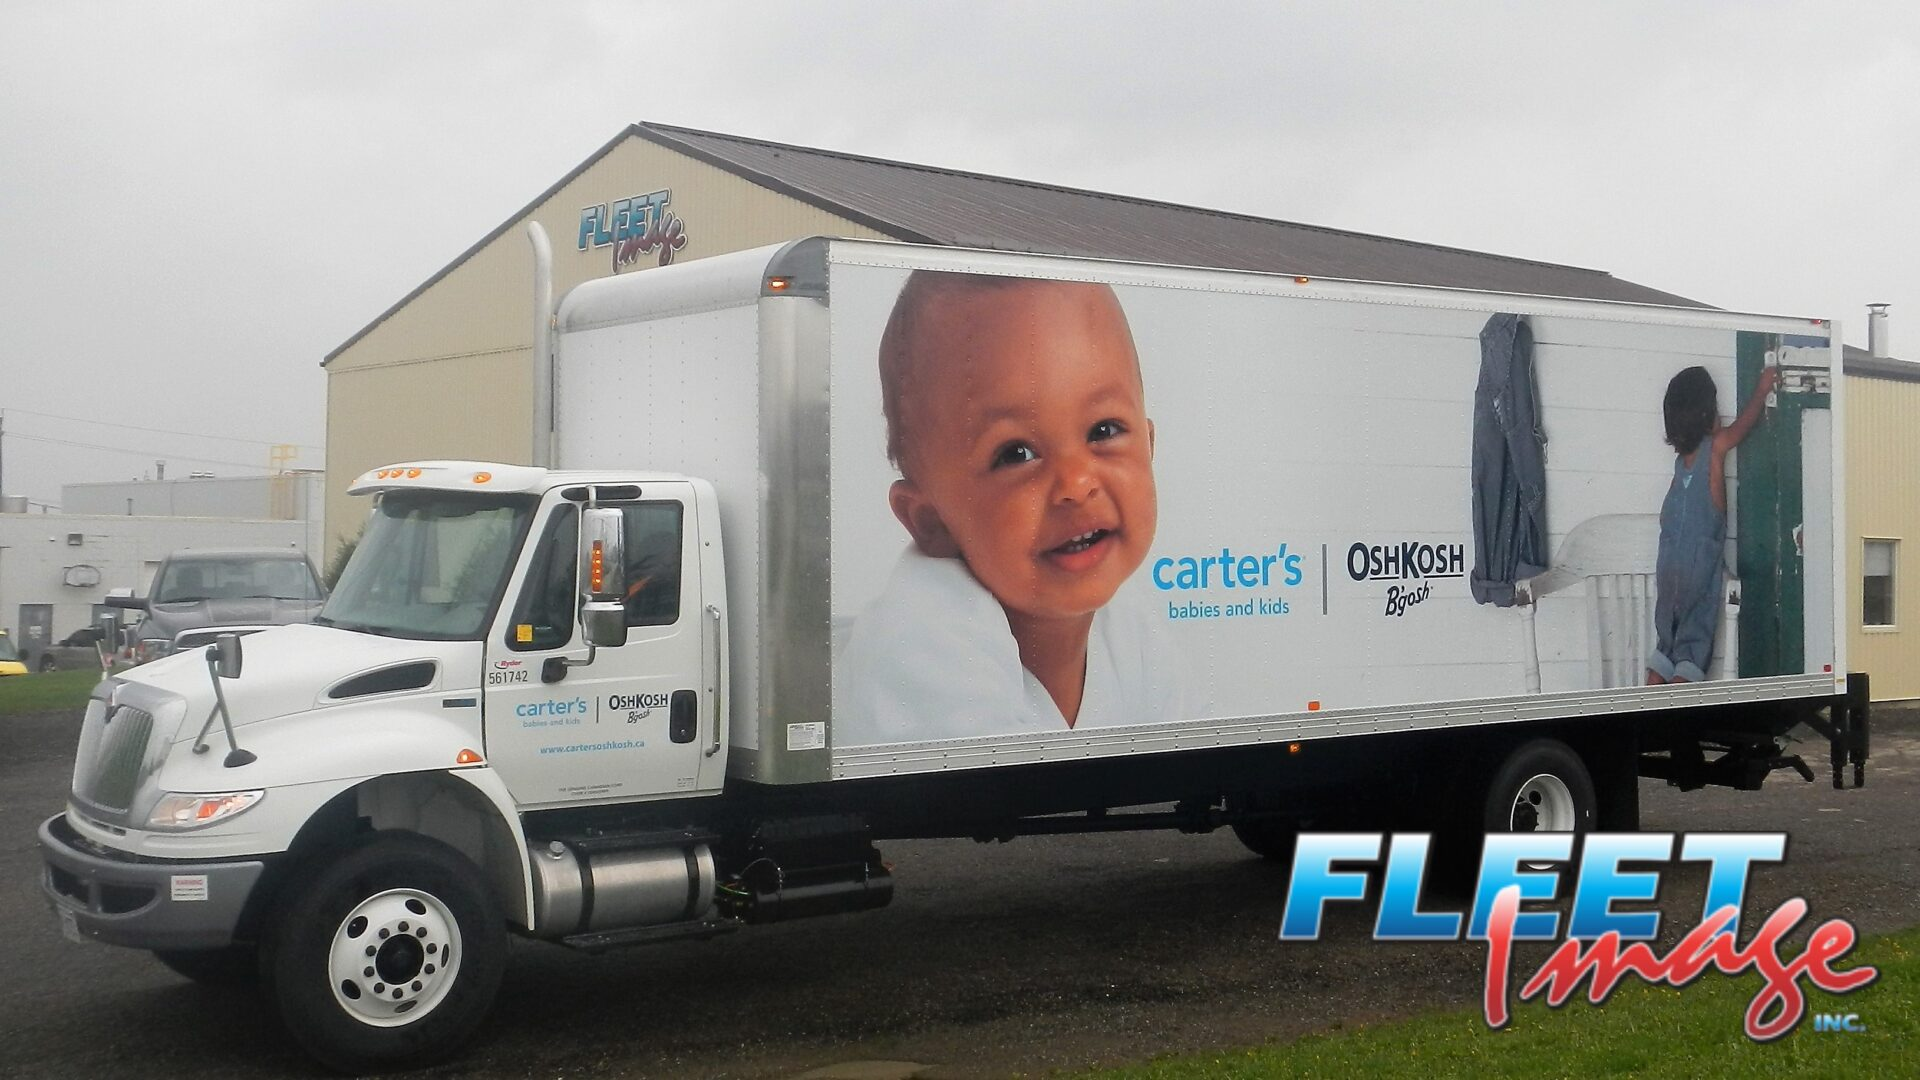 carter's babies and kids decal sticker on a truck